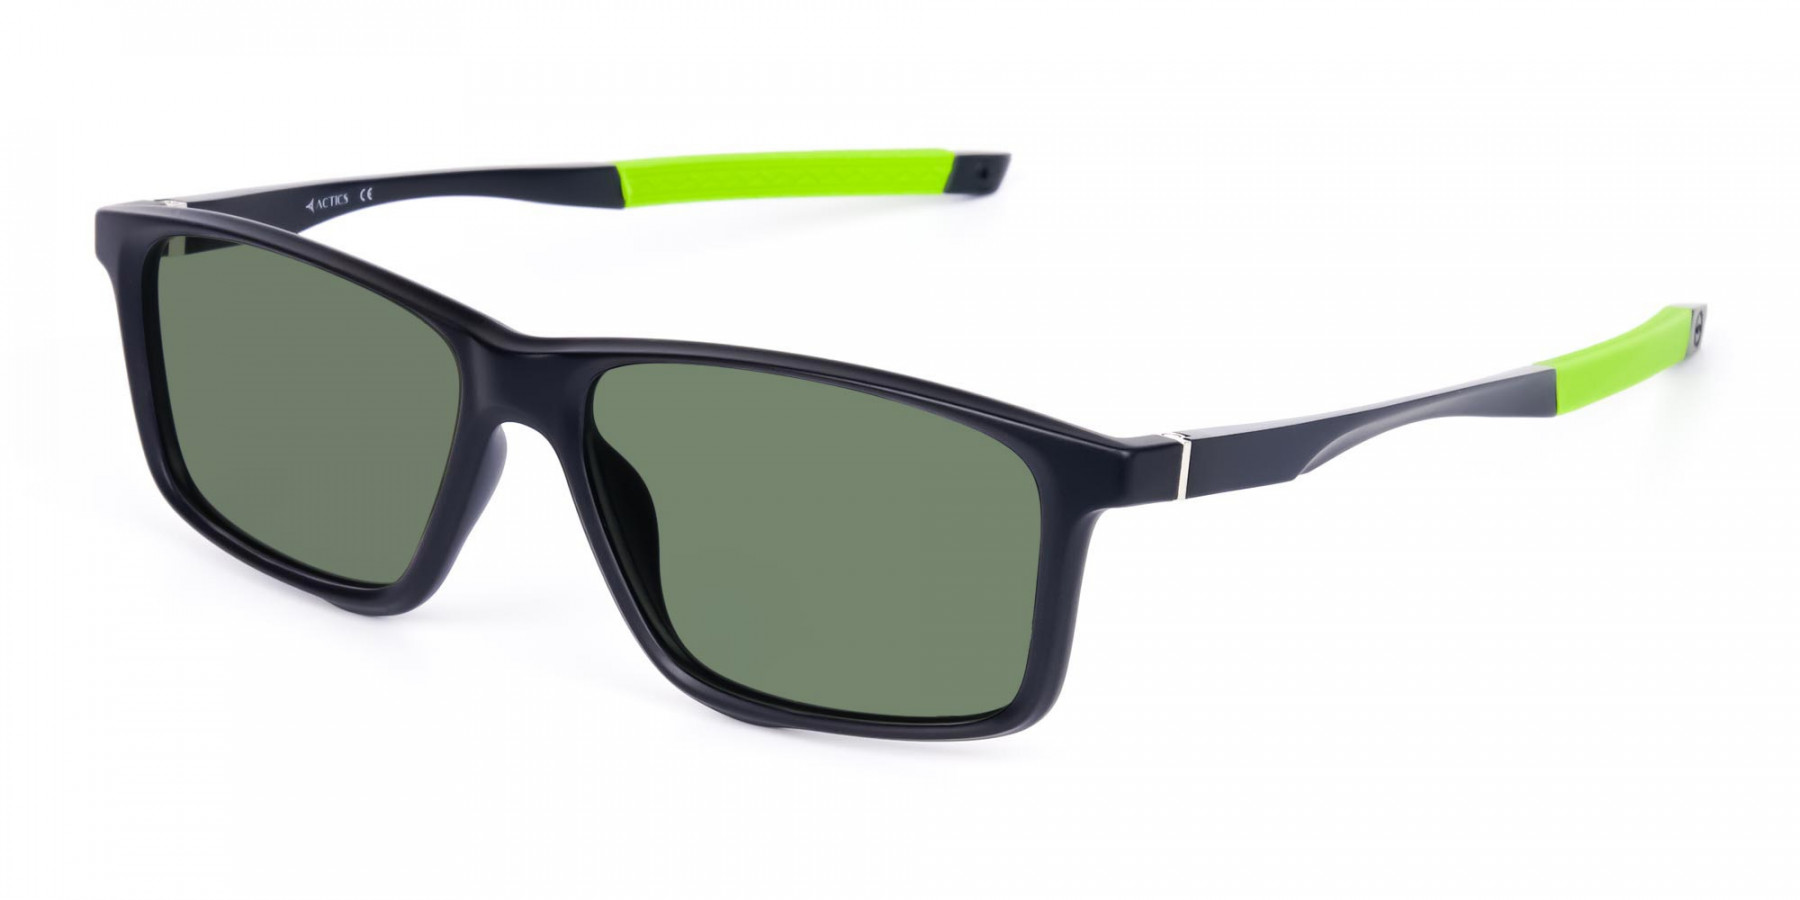 Black and Green Rectangle photochromic sunglasses cycling -3